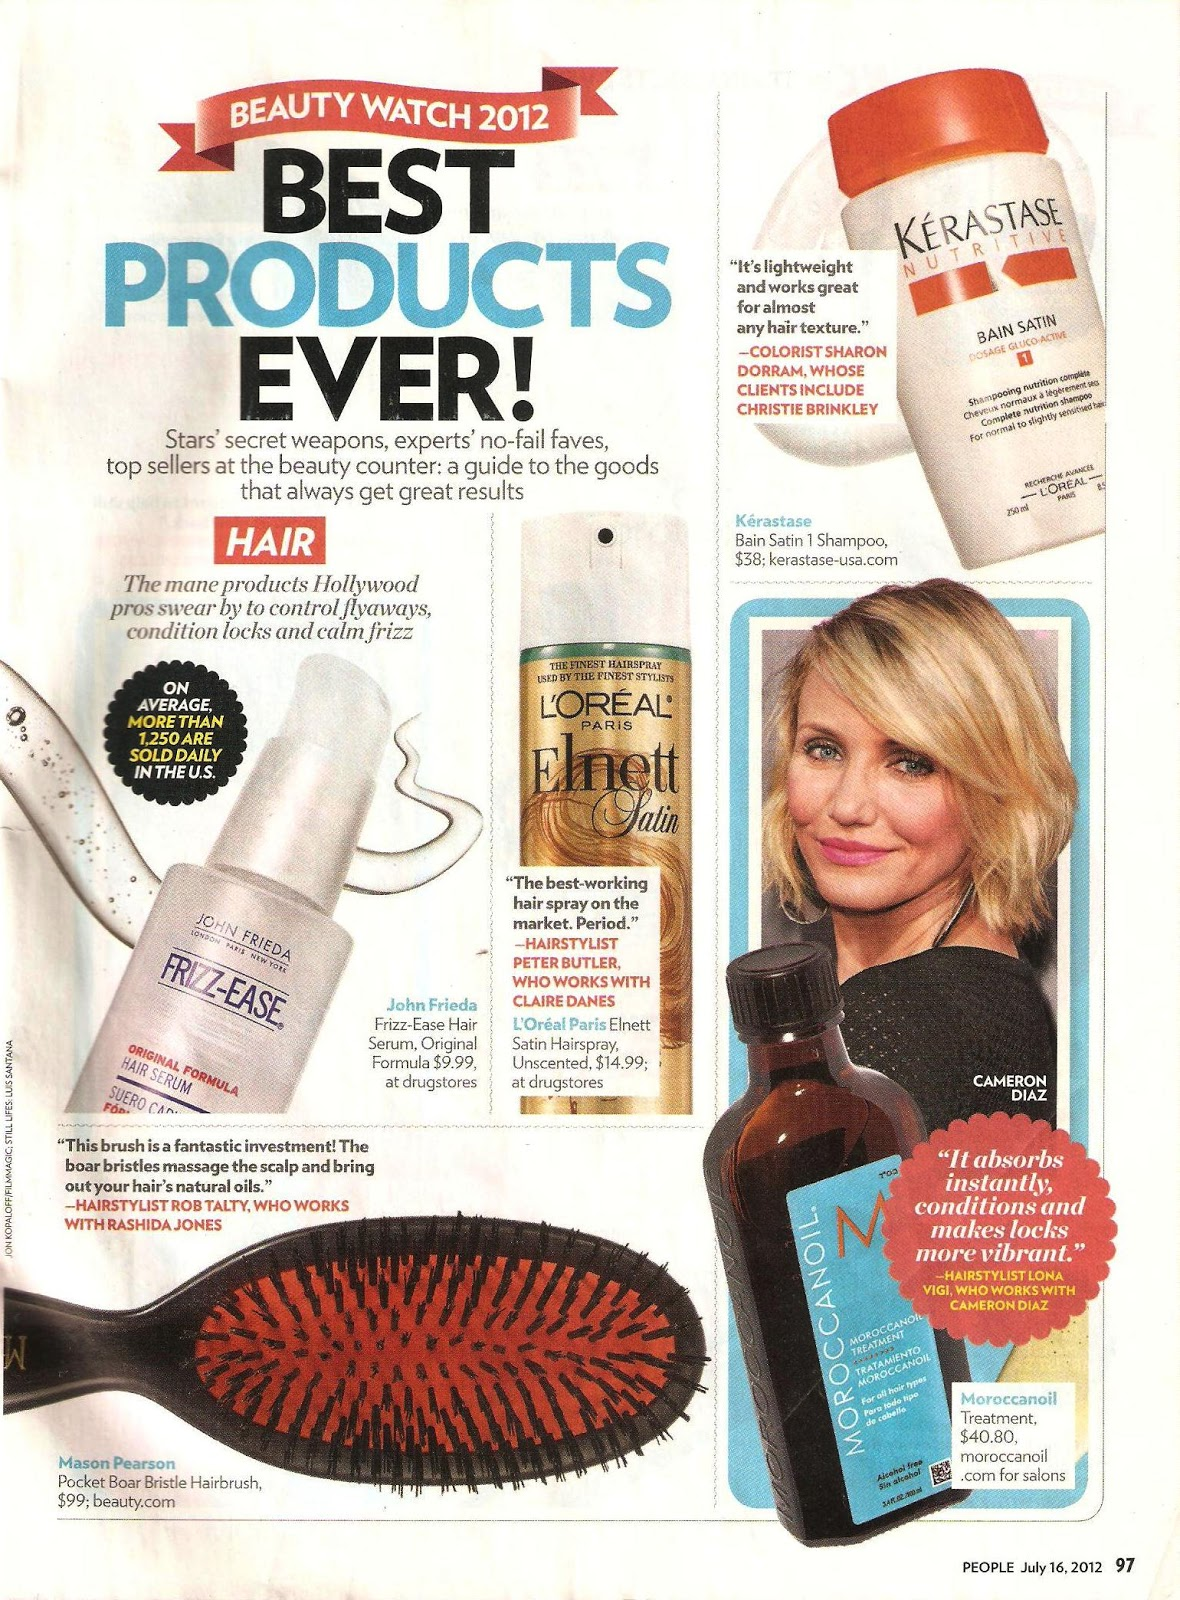 What Mimi Writes Beauty Watch 2012 Best Products Ever